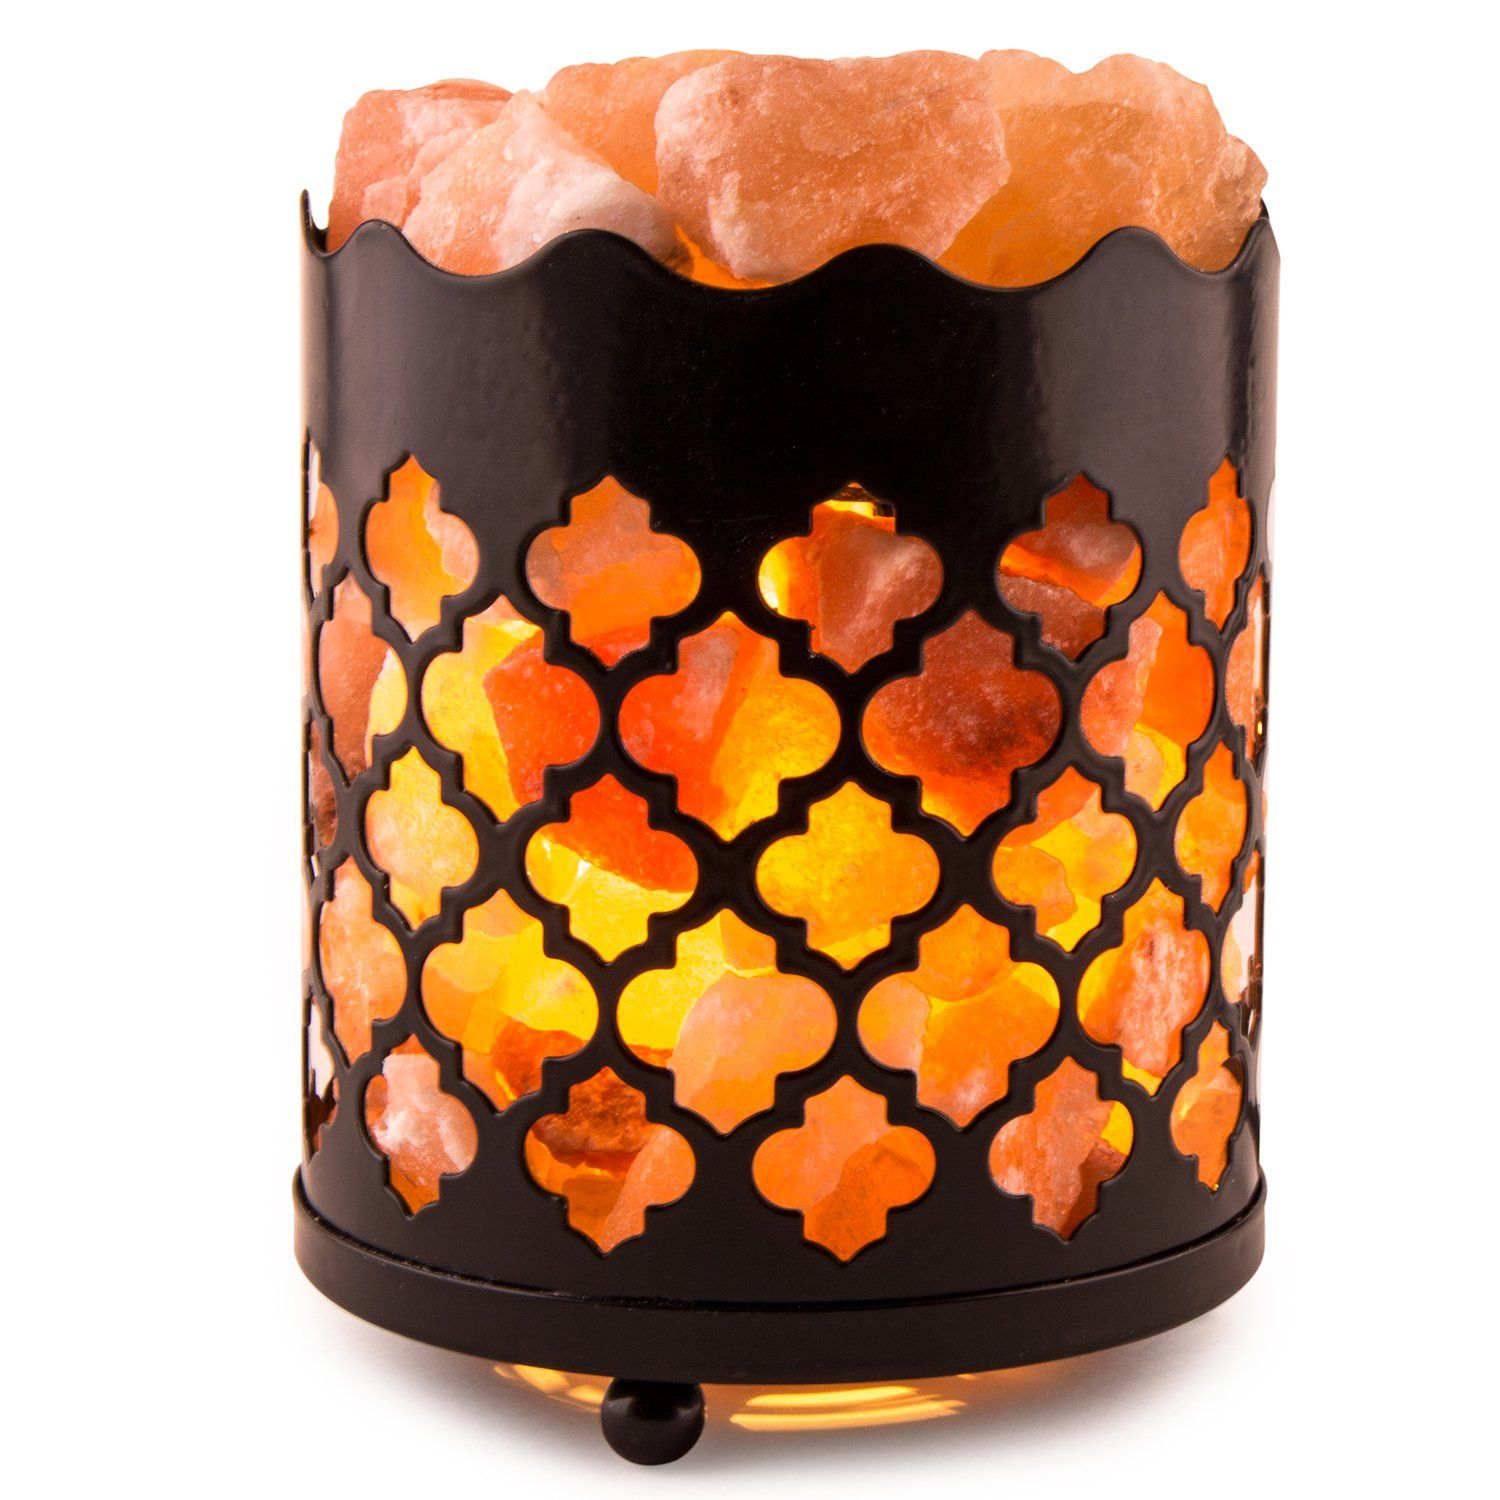 Lumiere Salt Lamp Classy Crystal Decor Natural Himalayan Salt Lamp With Salt Chunks In Decorating Design